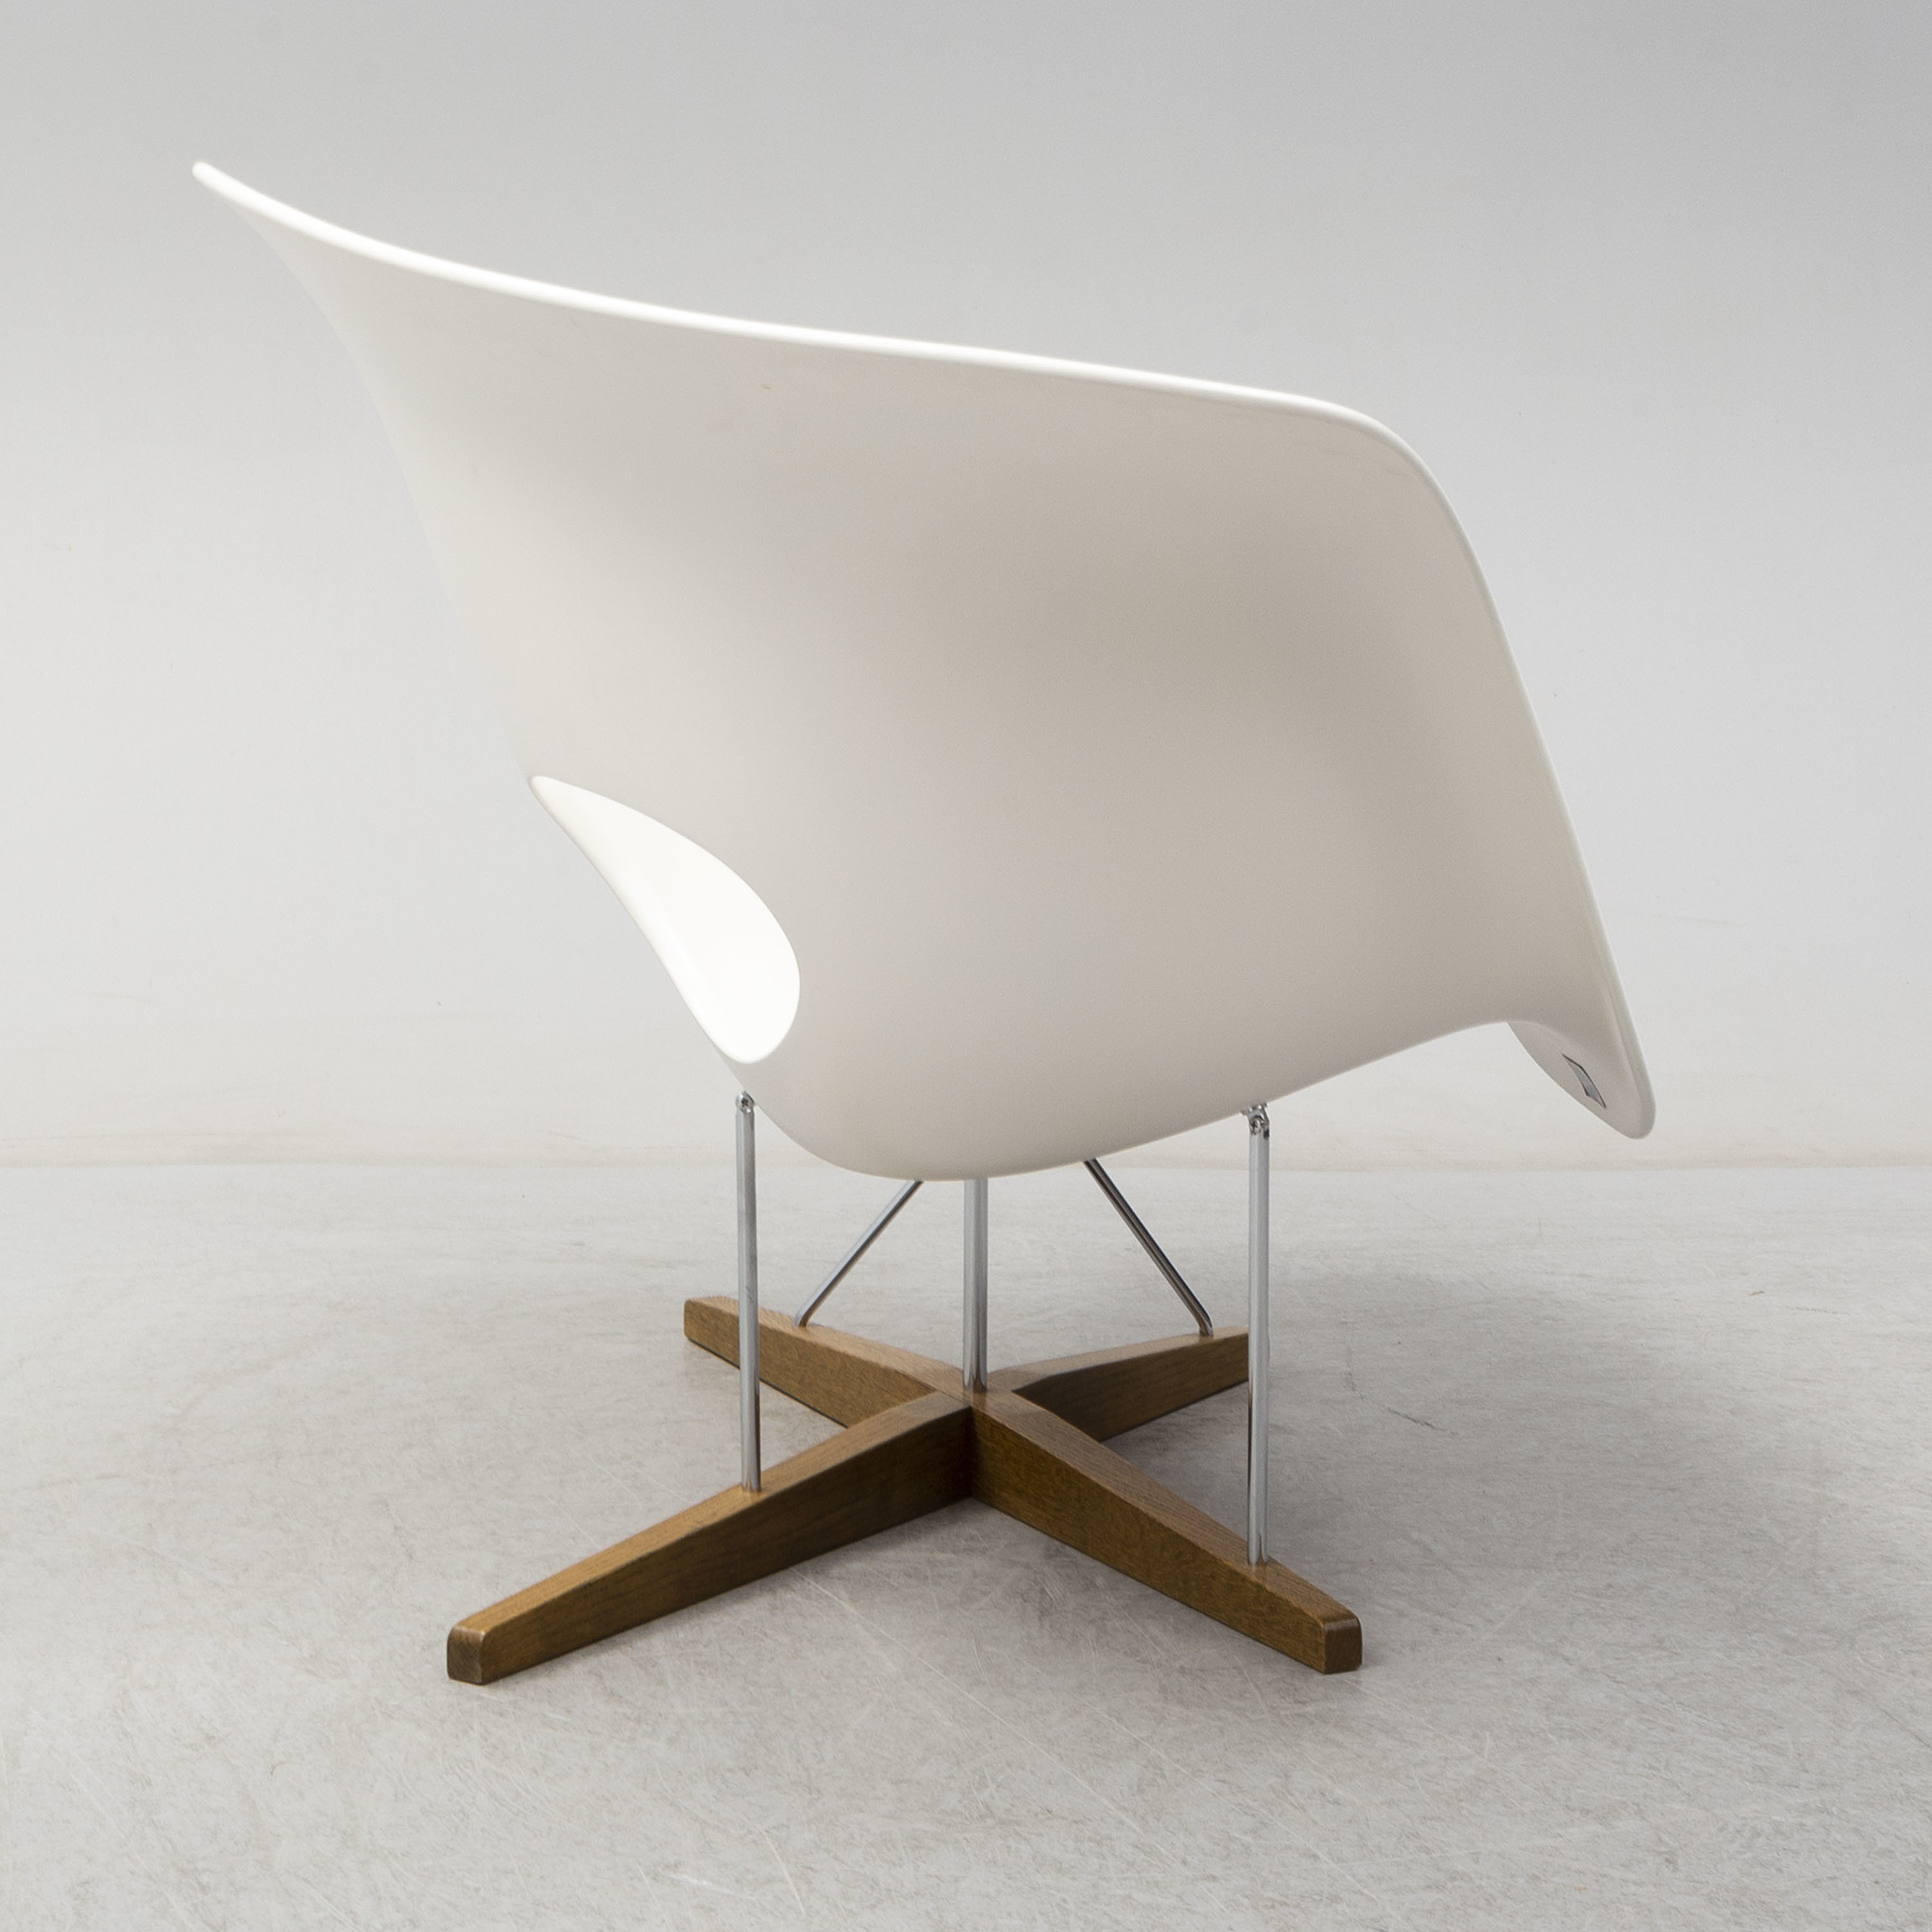 Chaise Vitra A La Chaise Lounge Chair By Charles Ray Eames For Vitra